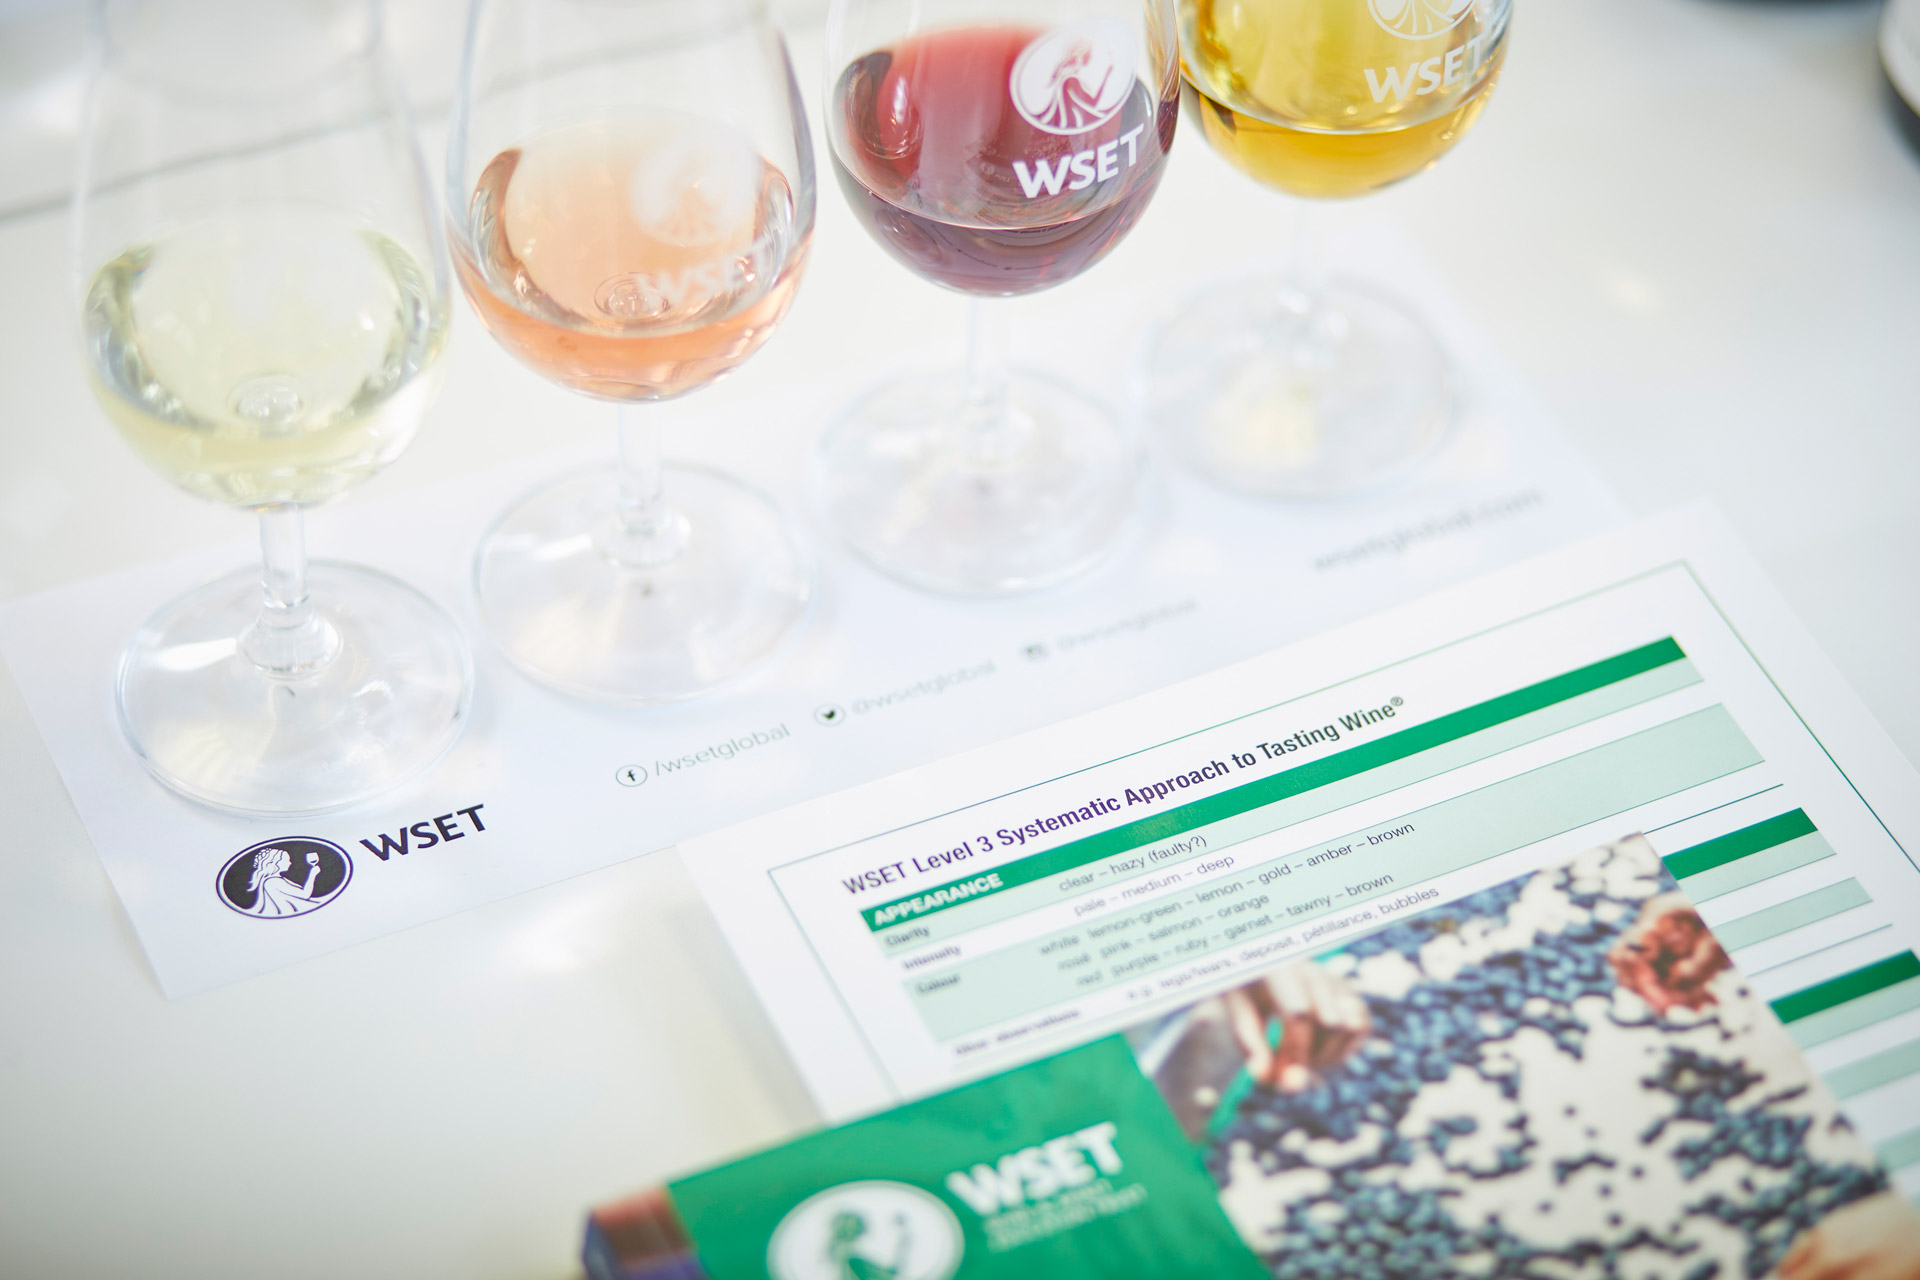 WSET Level 3 Wine tasting session